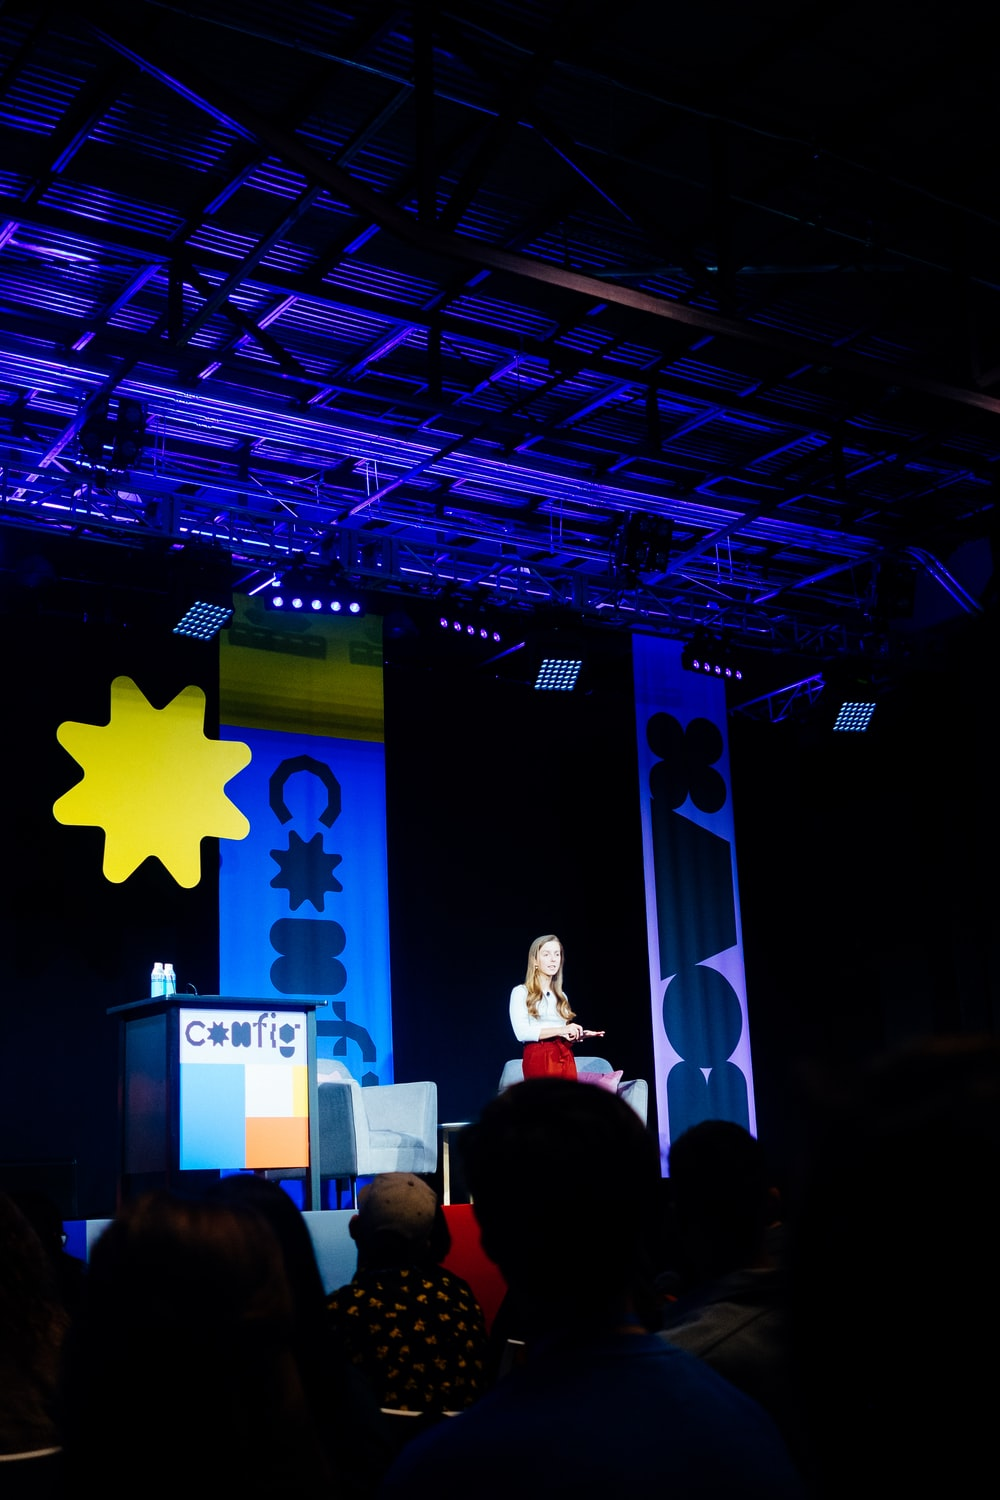 people standing on stage with star on wall